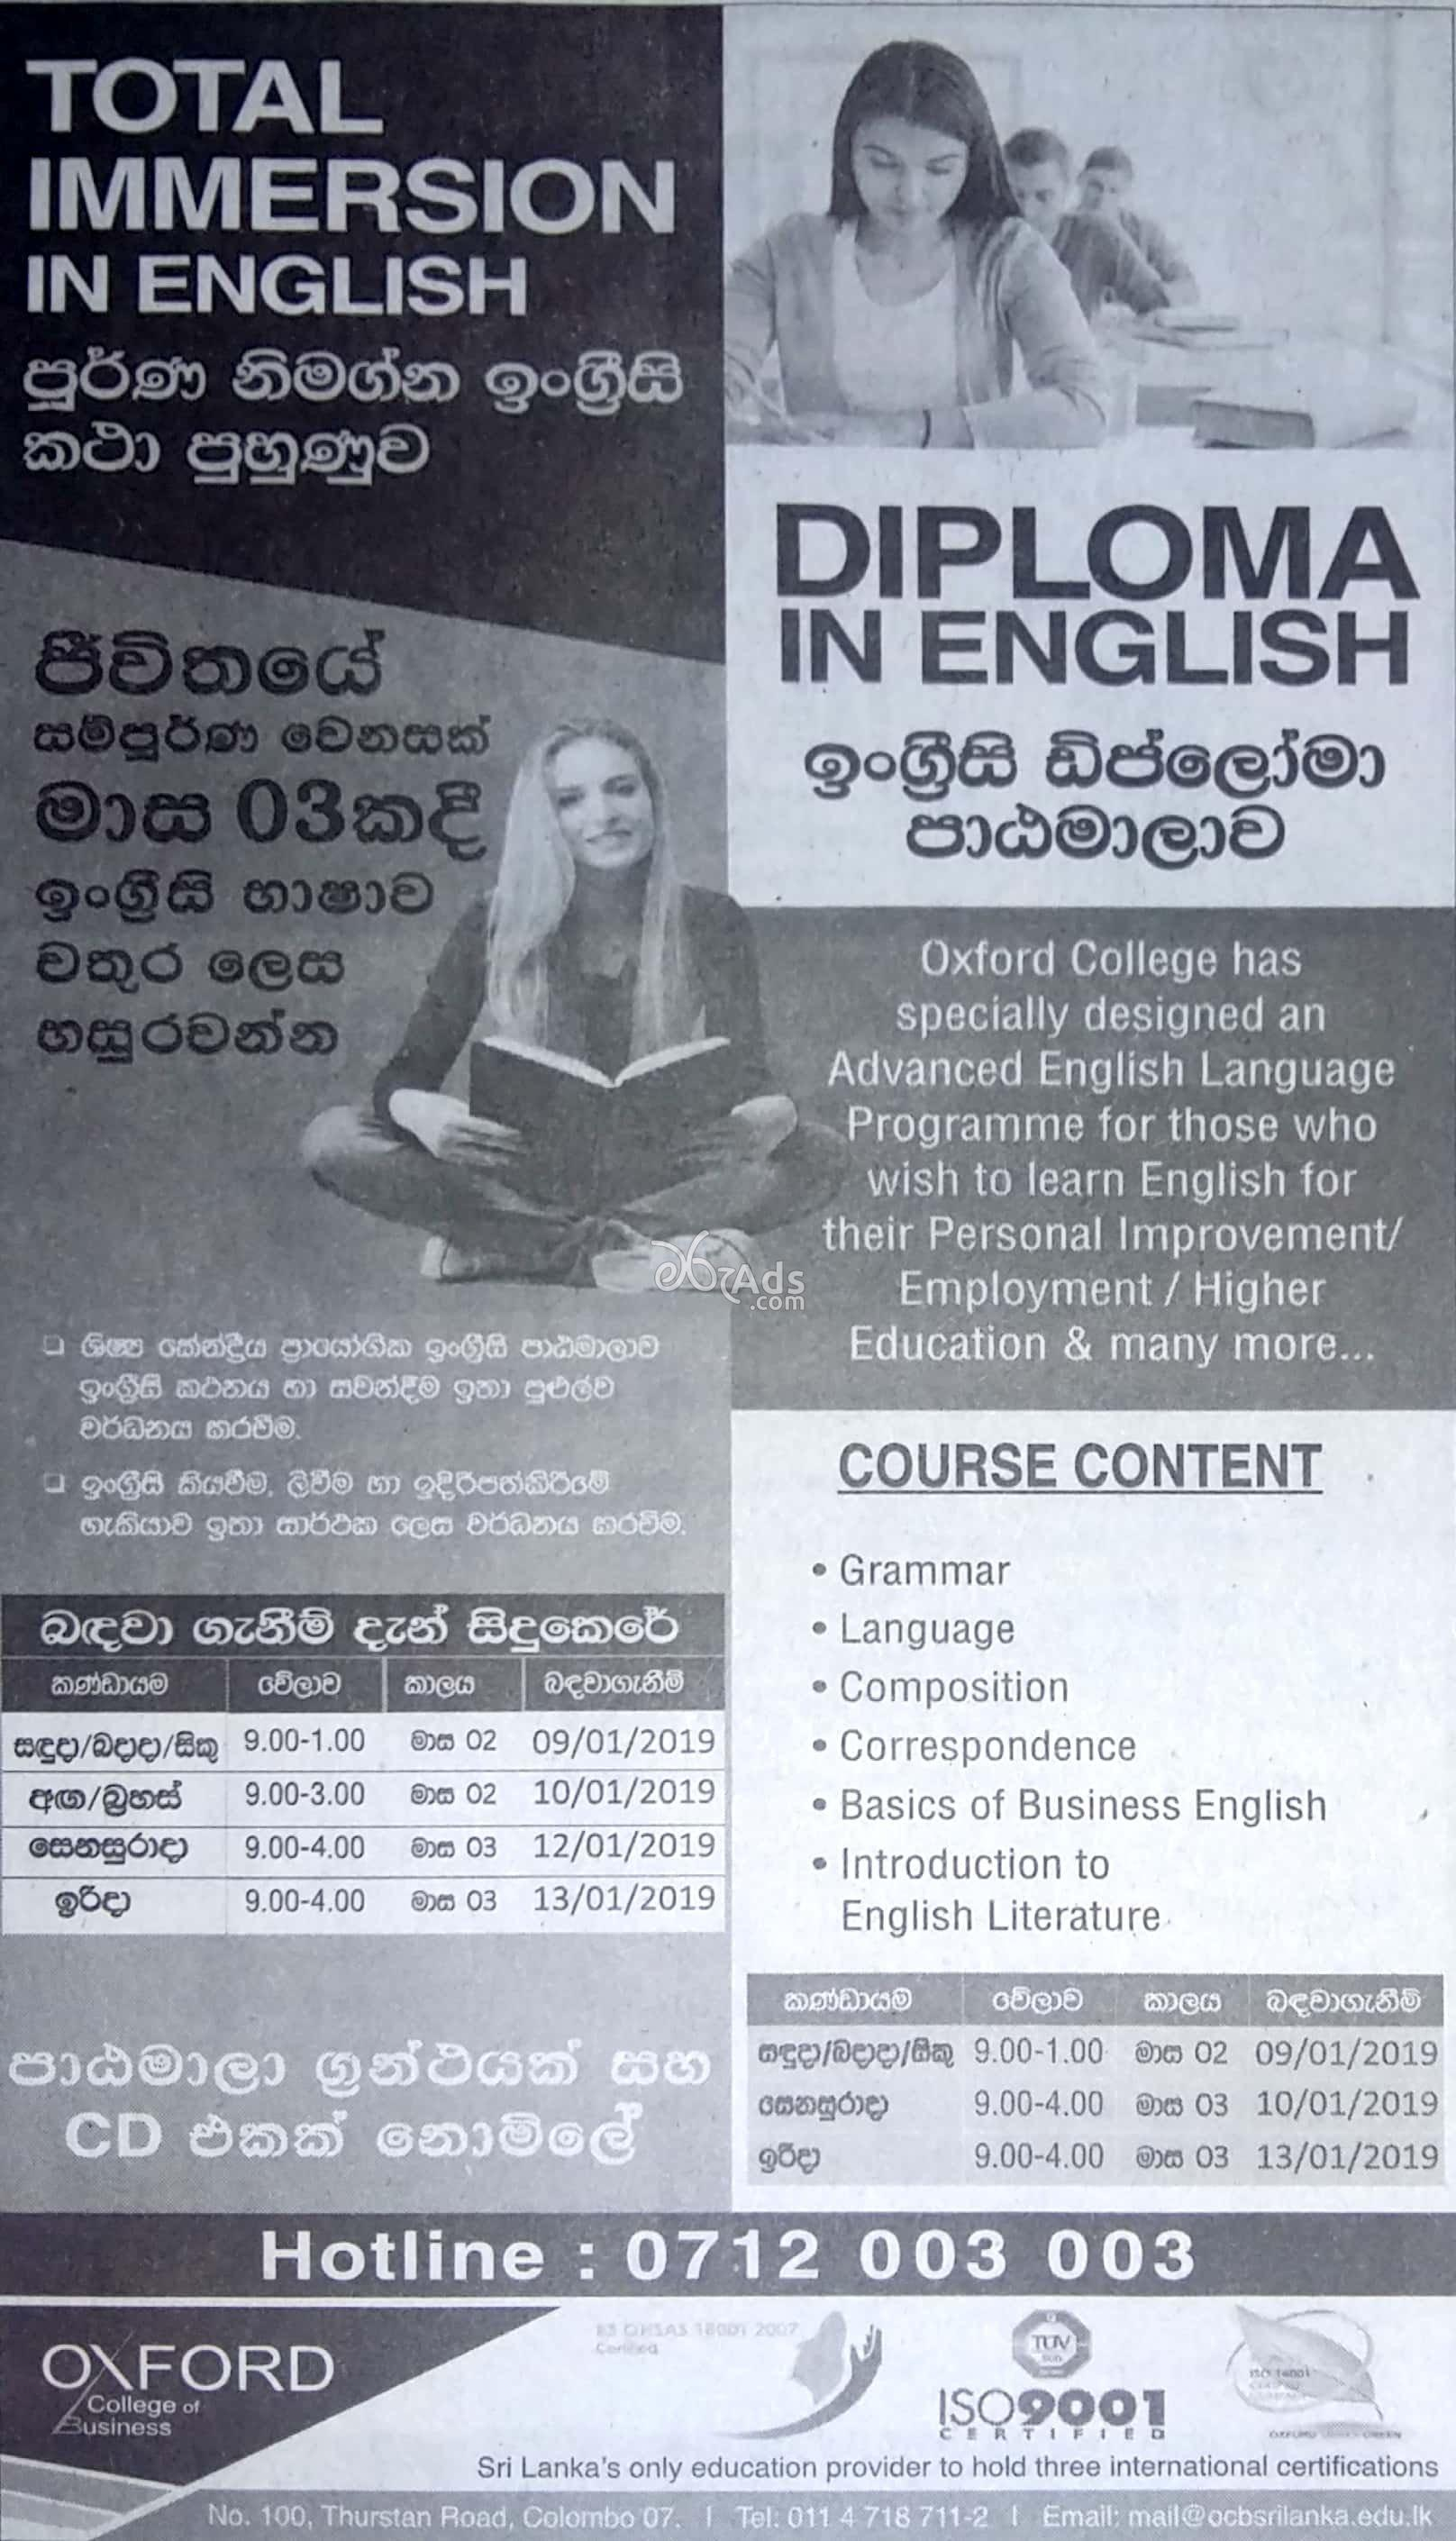 af308f83 Diploma in English at Oxford College of Business - Colombo 07